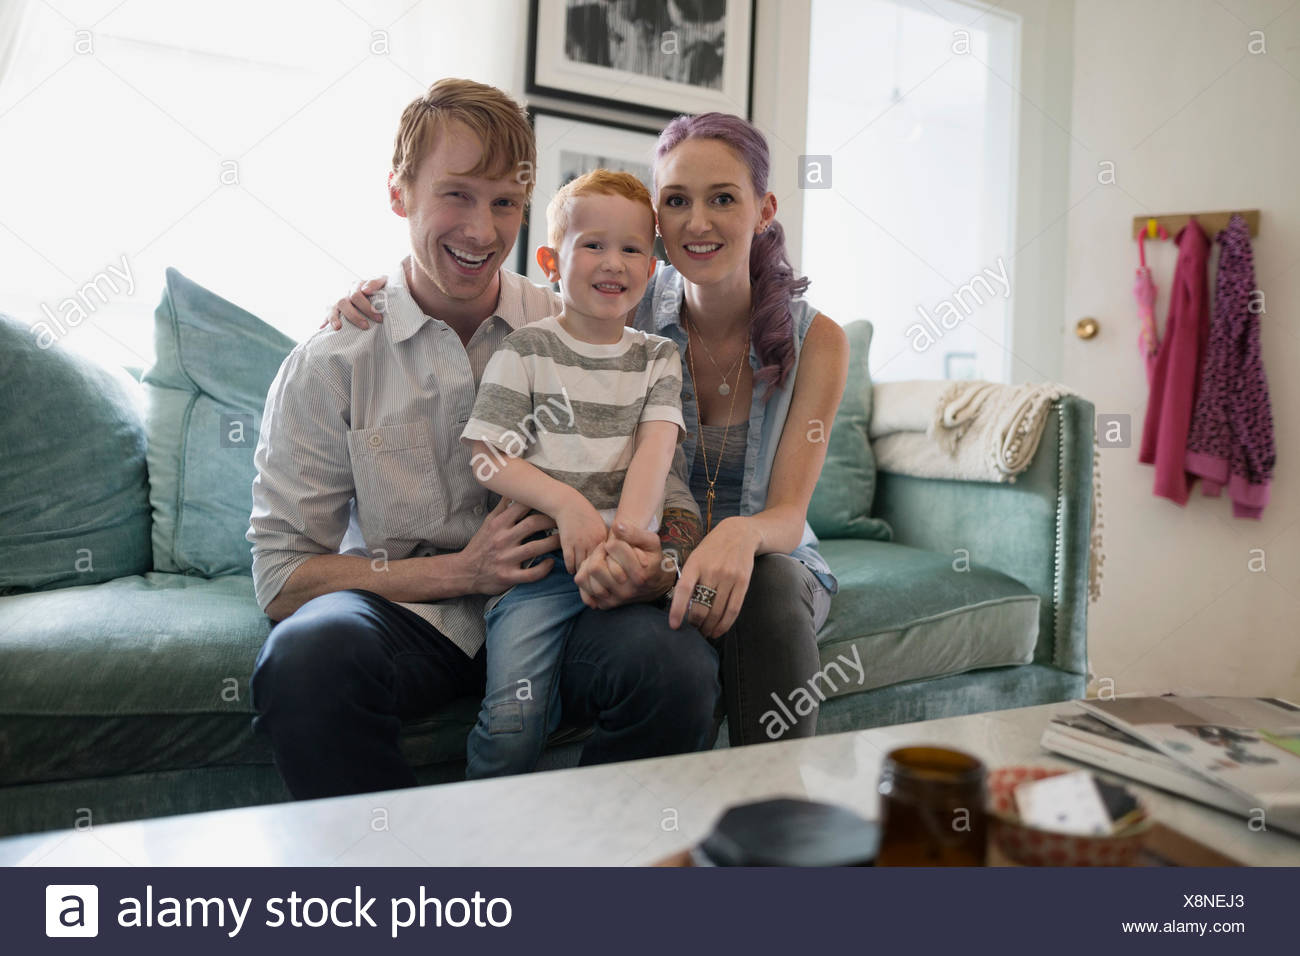 Portrait smiling young family on sofa in living room - Stock Image